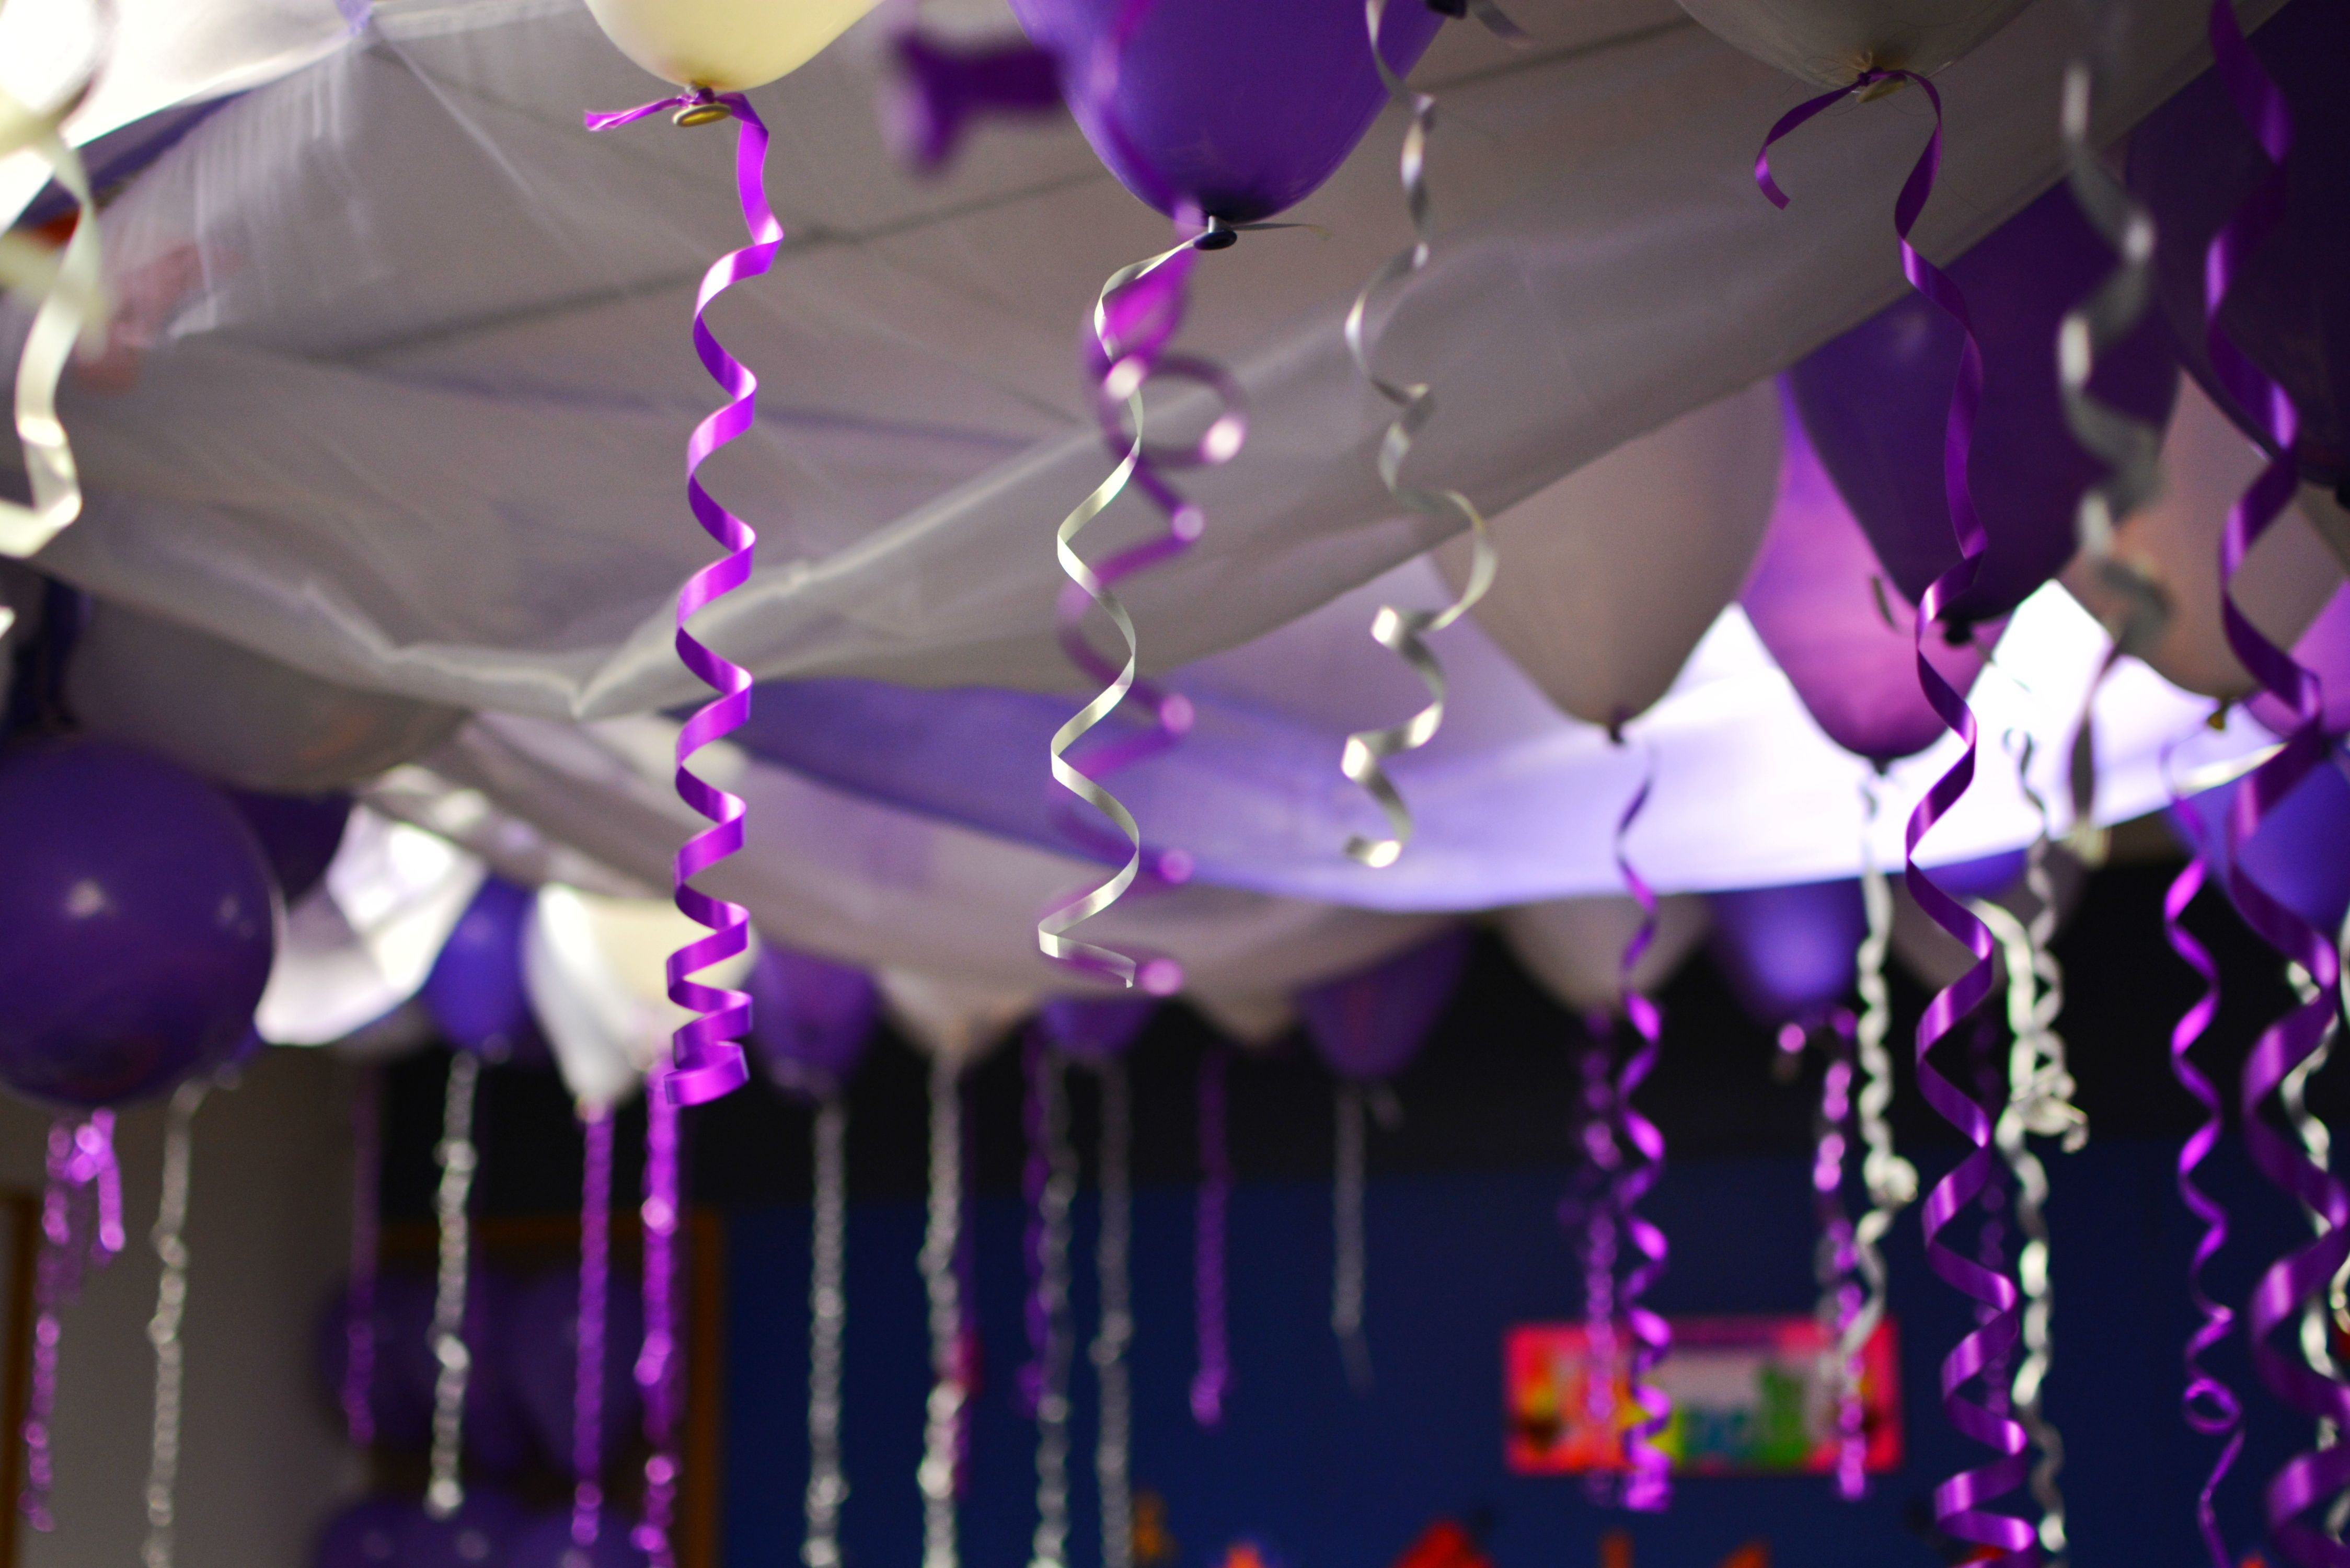 Decorative balloons and ribbons on the ceiling